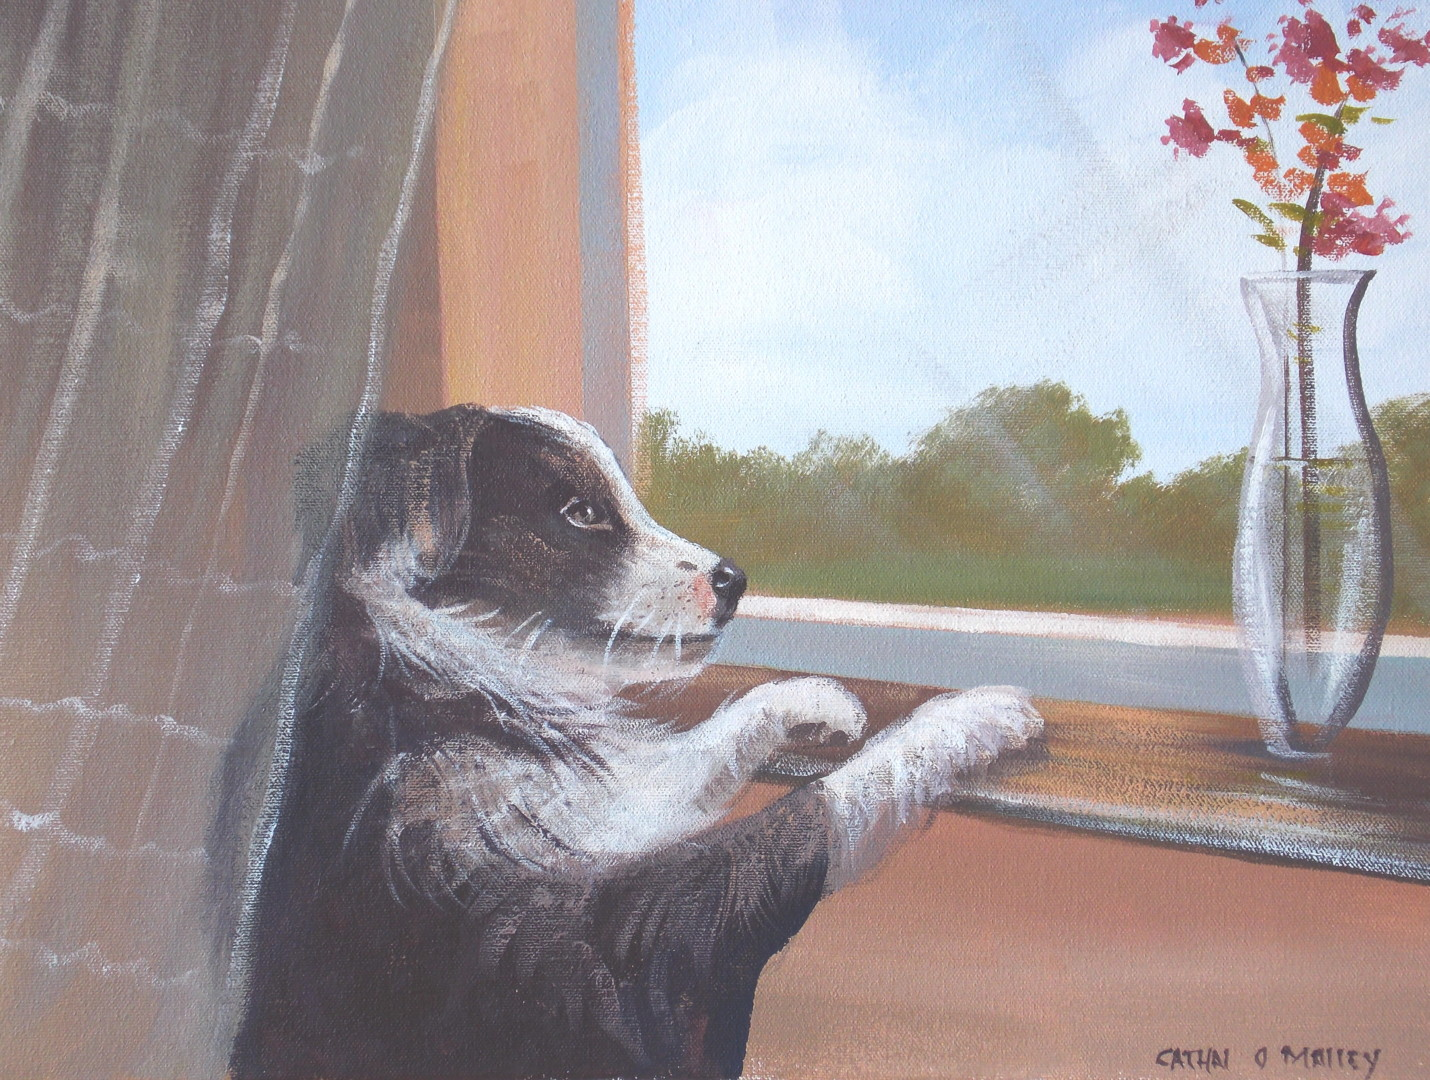 Cathal O Malley - puppy by a window